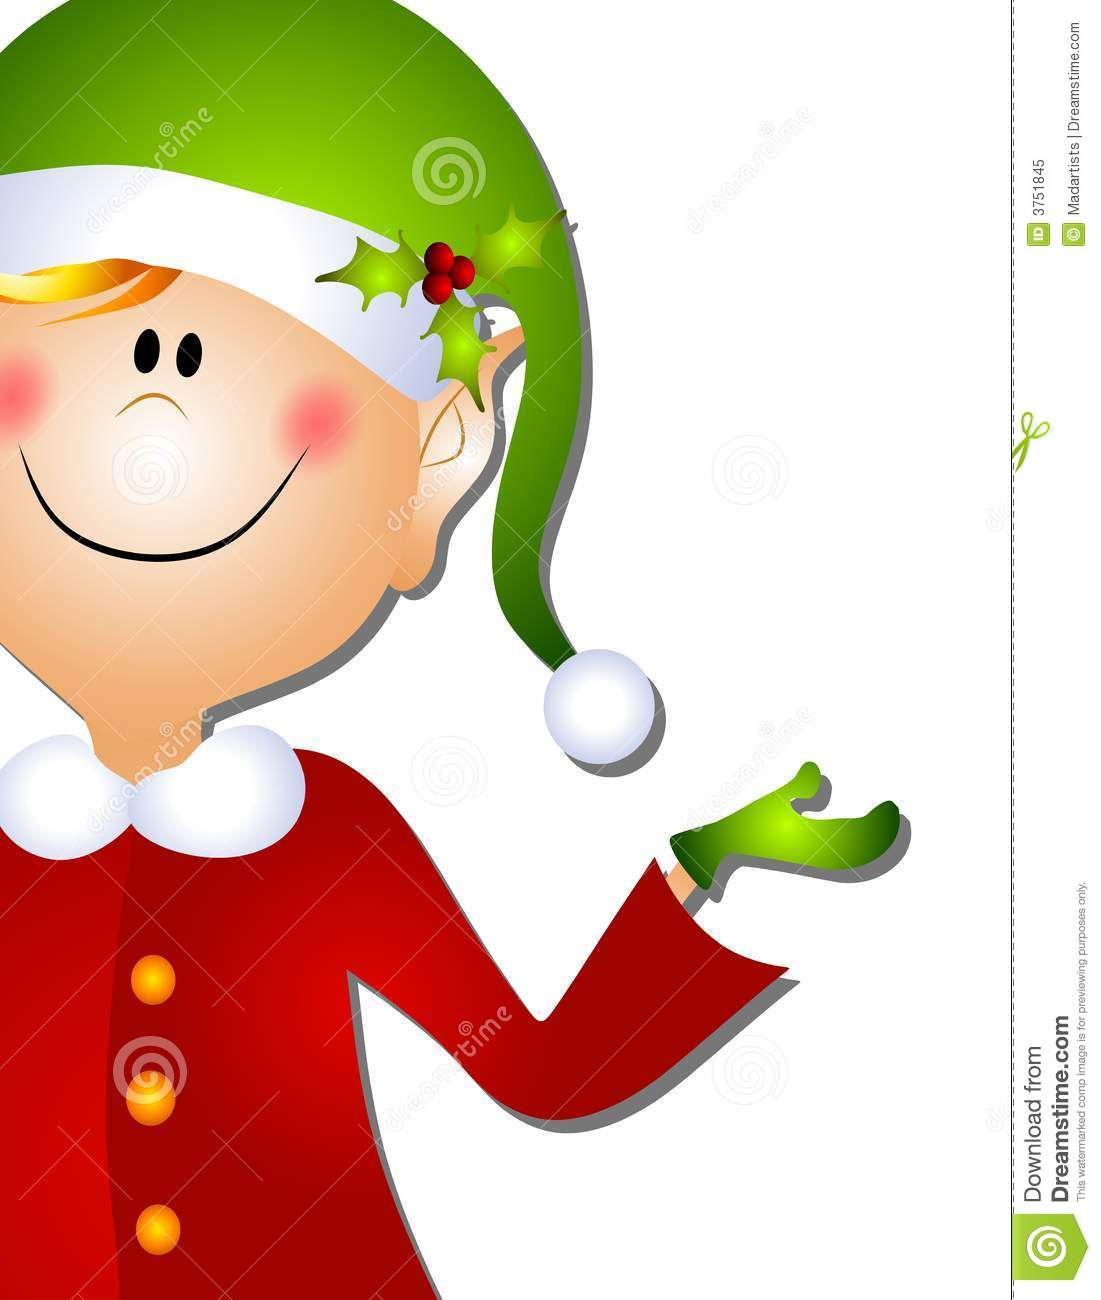 Animated Christmas Elves Clipart - Clipart Kid